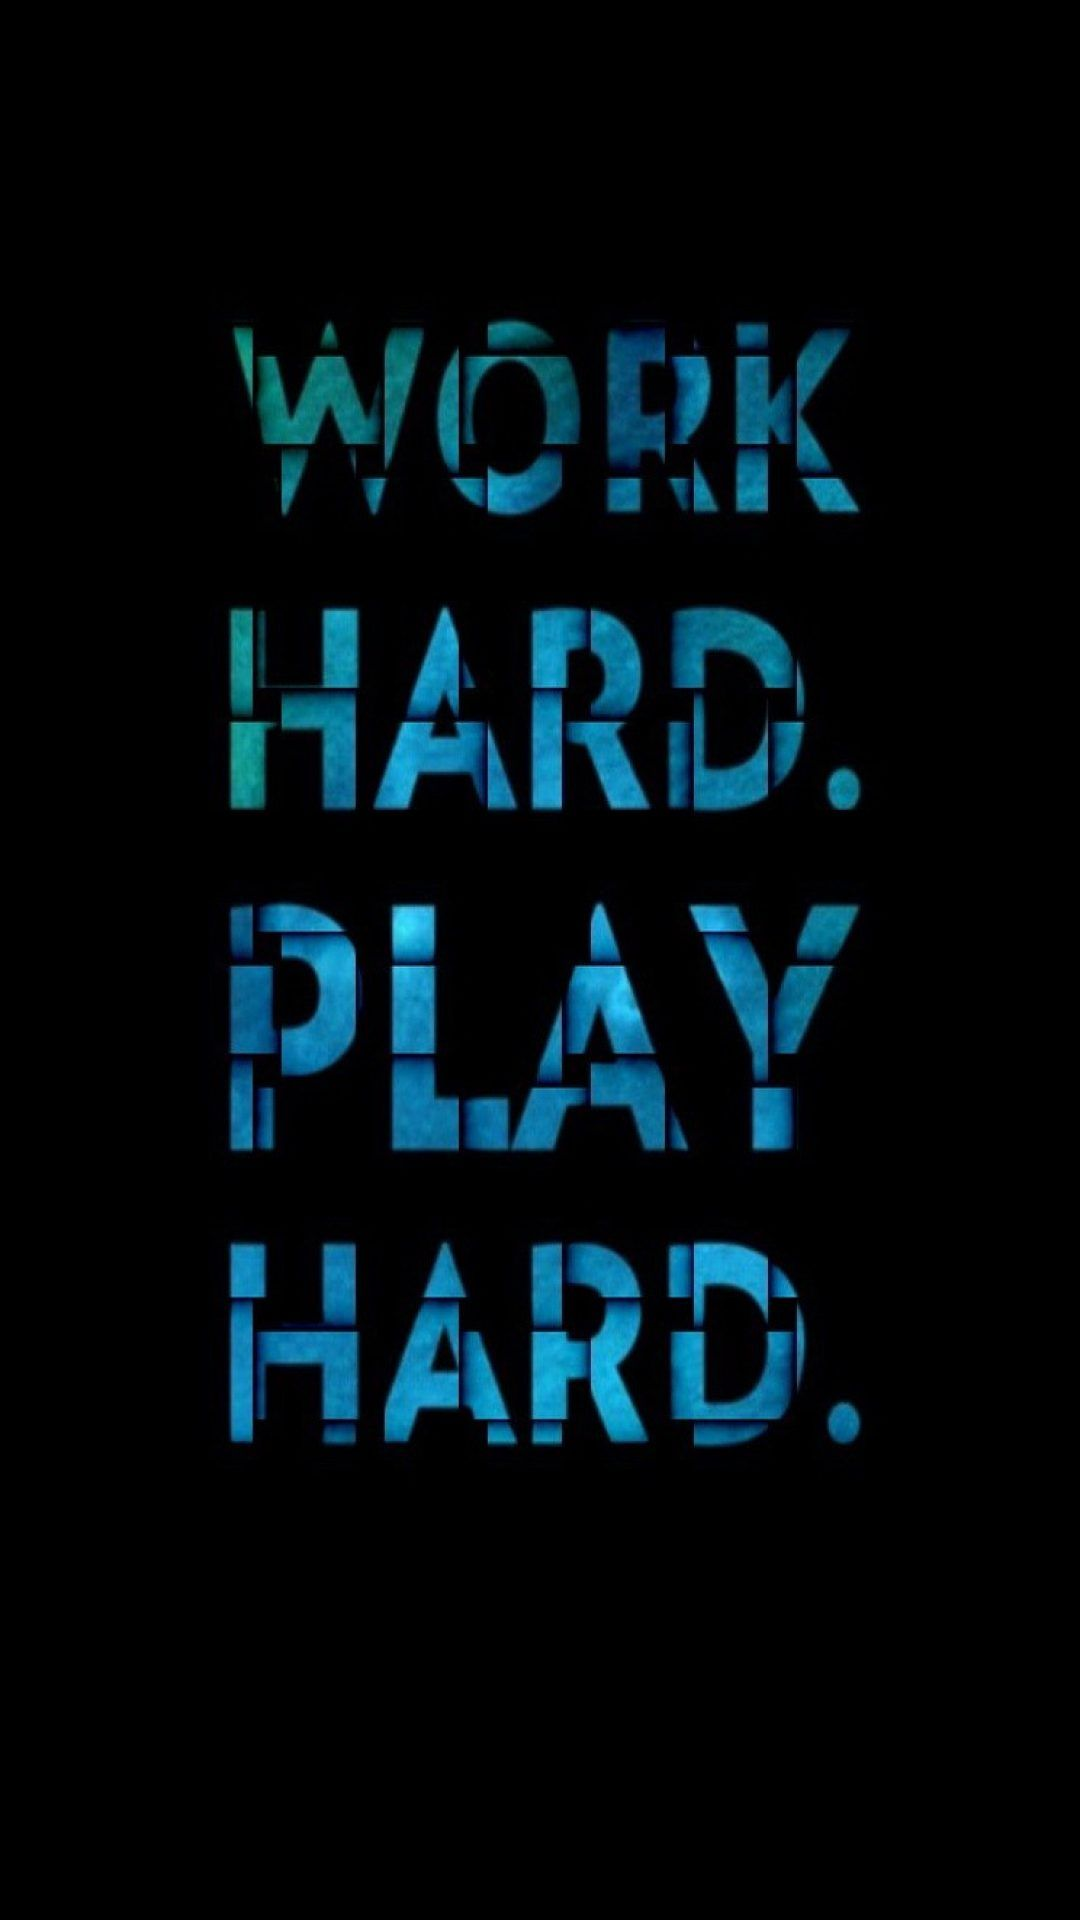 Inspirational Quotes Wallpapers for Mobile 6 of 20 Work Hard